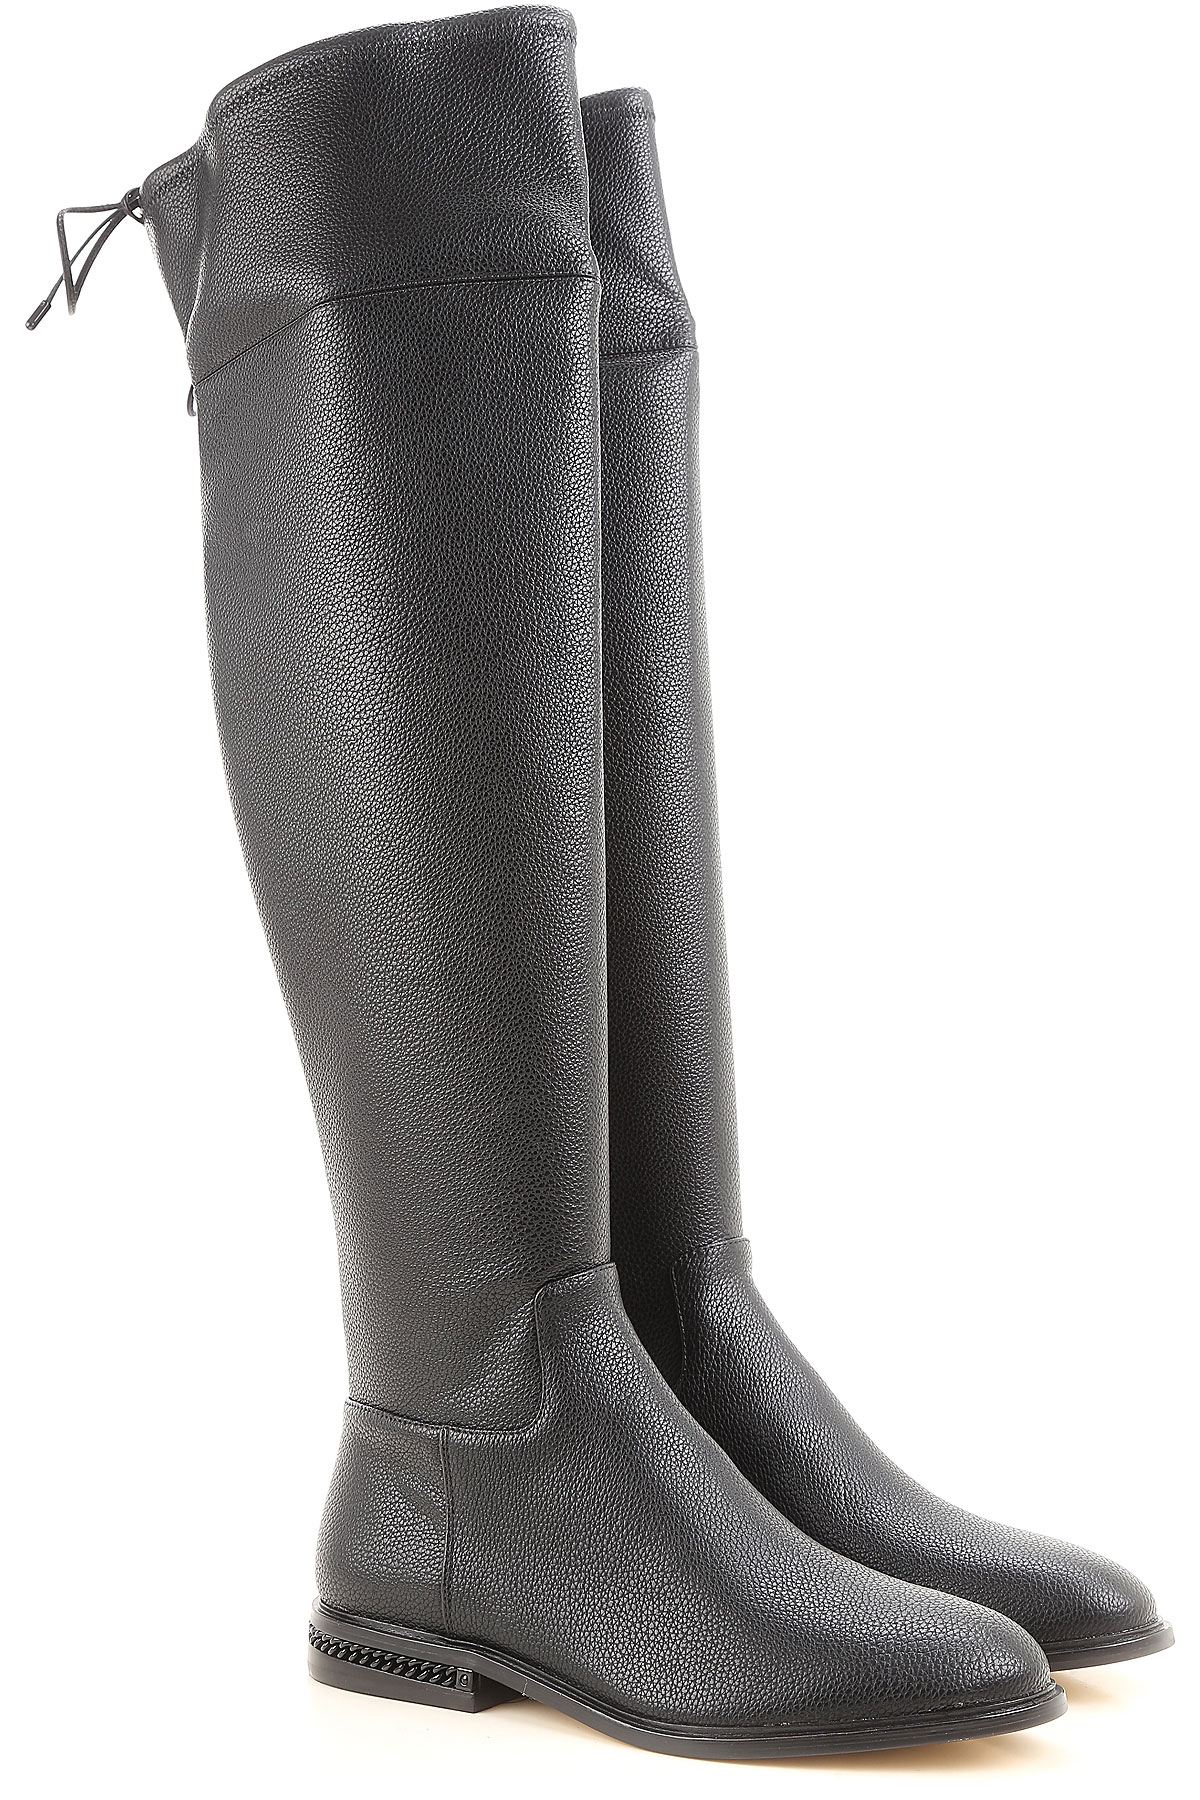 Michael Kors Boots for Women, Booties On Sale, Black, Leather, 2017, 3.5